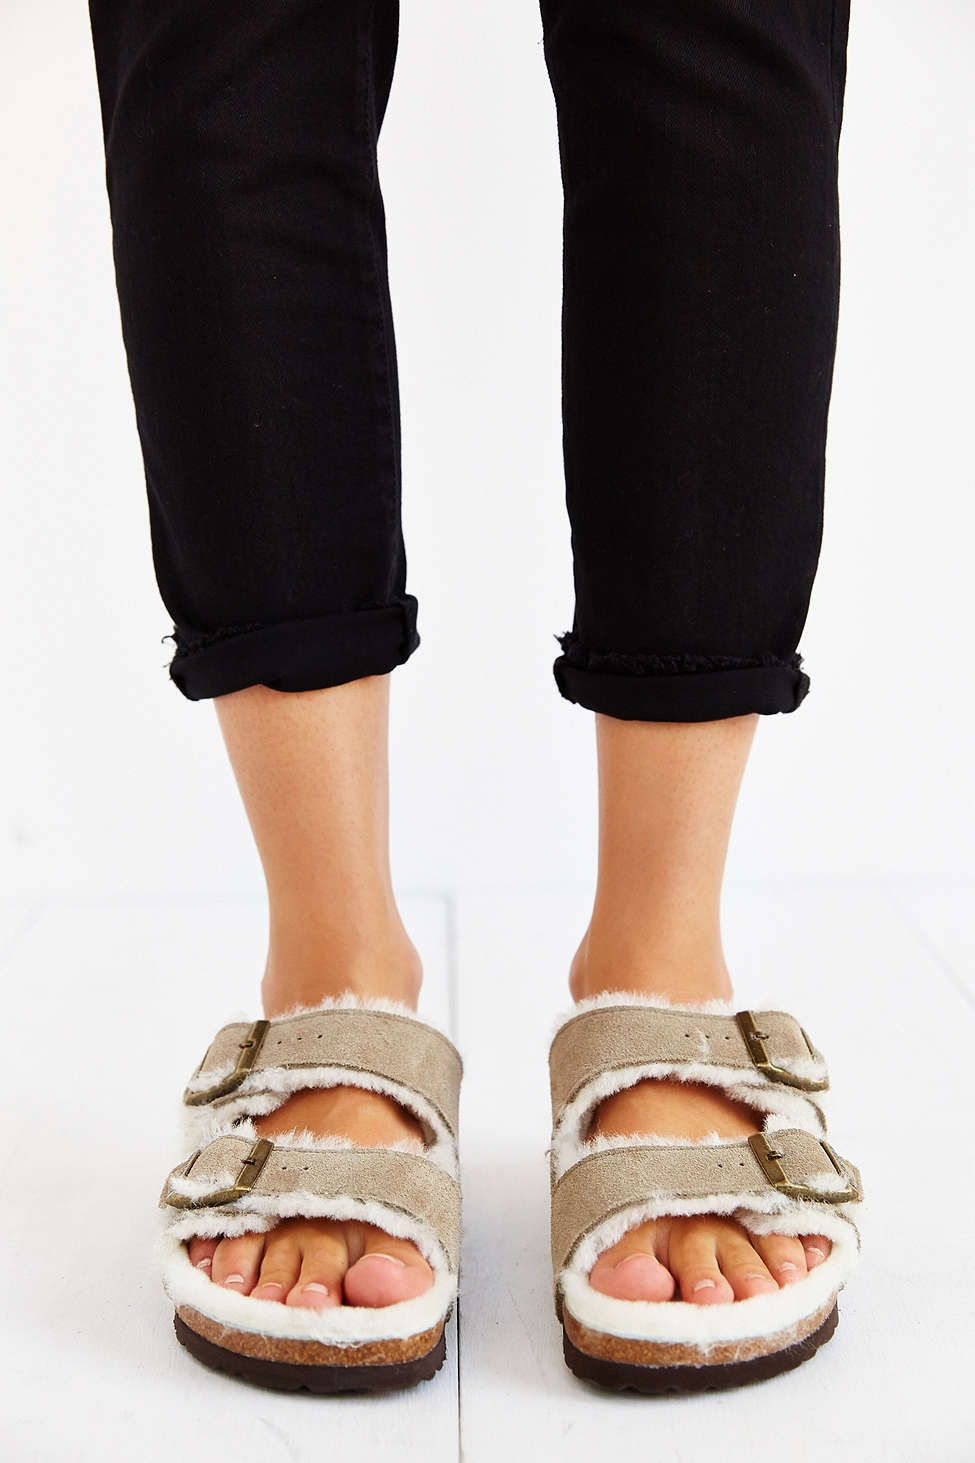 Birkenstock Arizona Shearling Taupe Suede Sandal - Urban Outfitters ... f4239be6ecf